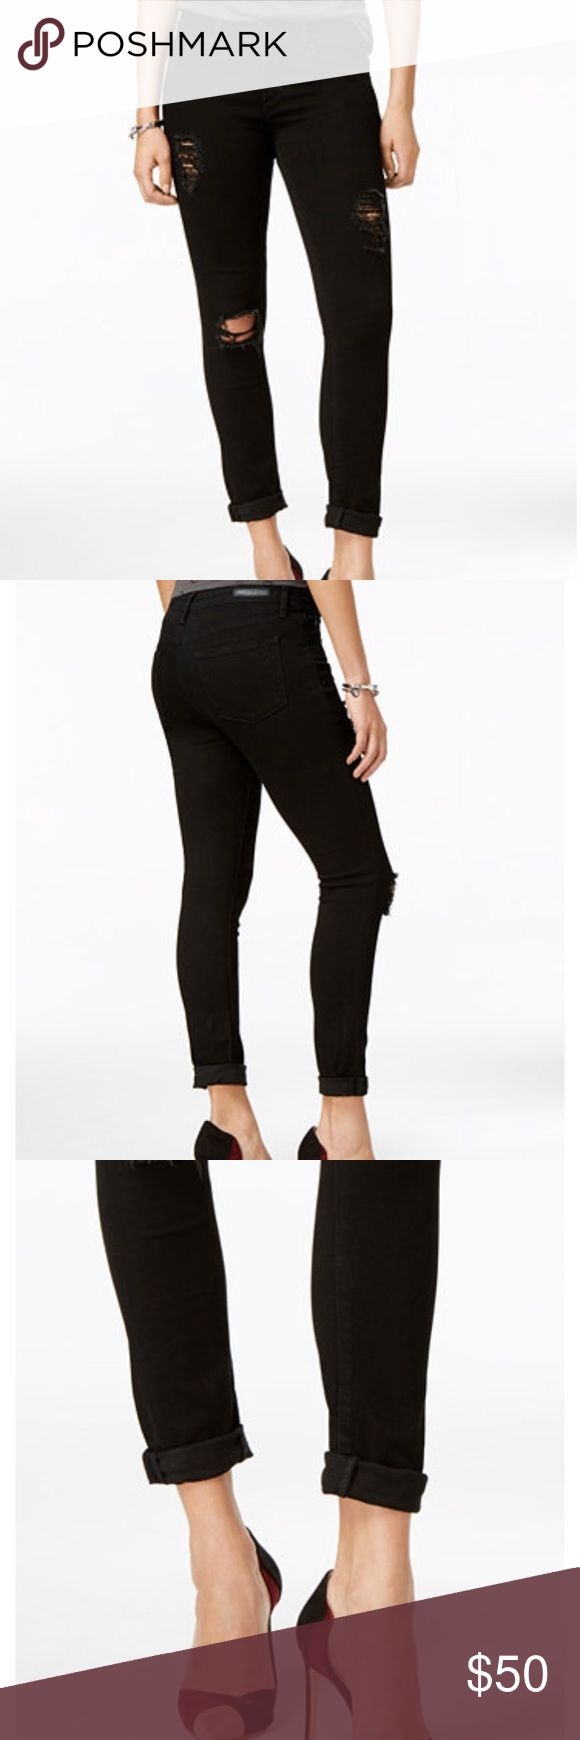 New Articles of society ripped skinny jeans Distressed skinny jeans  Black Supper comfortable  Mid rise  Skinny leg  Skinny fit Size 27 New without tags Articles Of Society Jeans Skinny